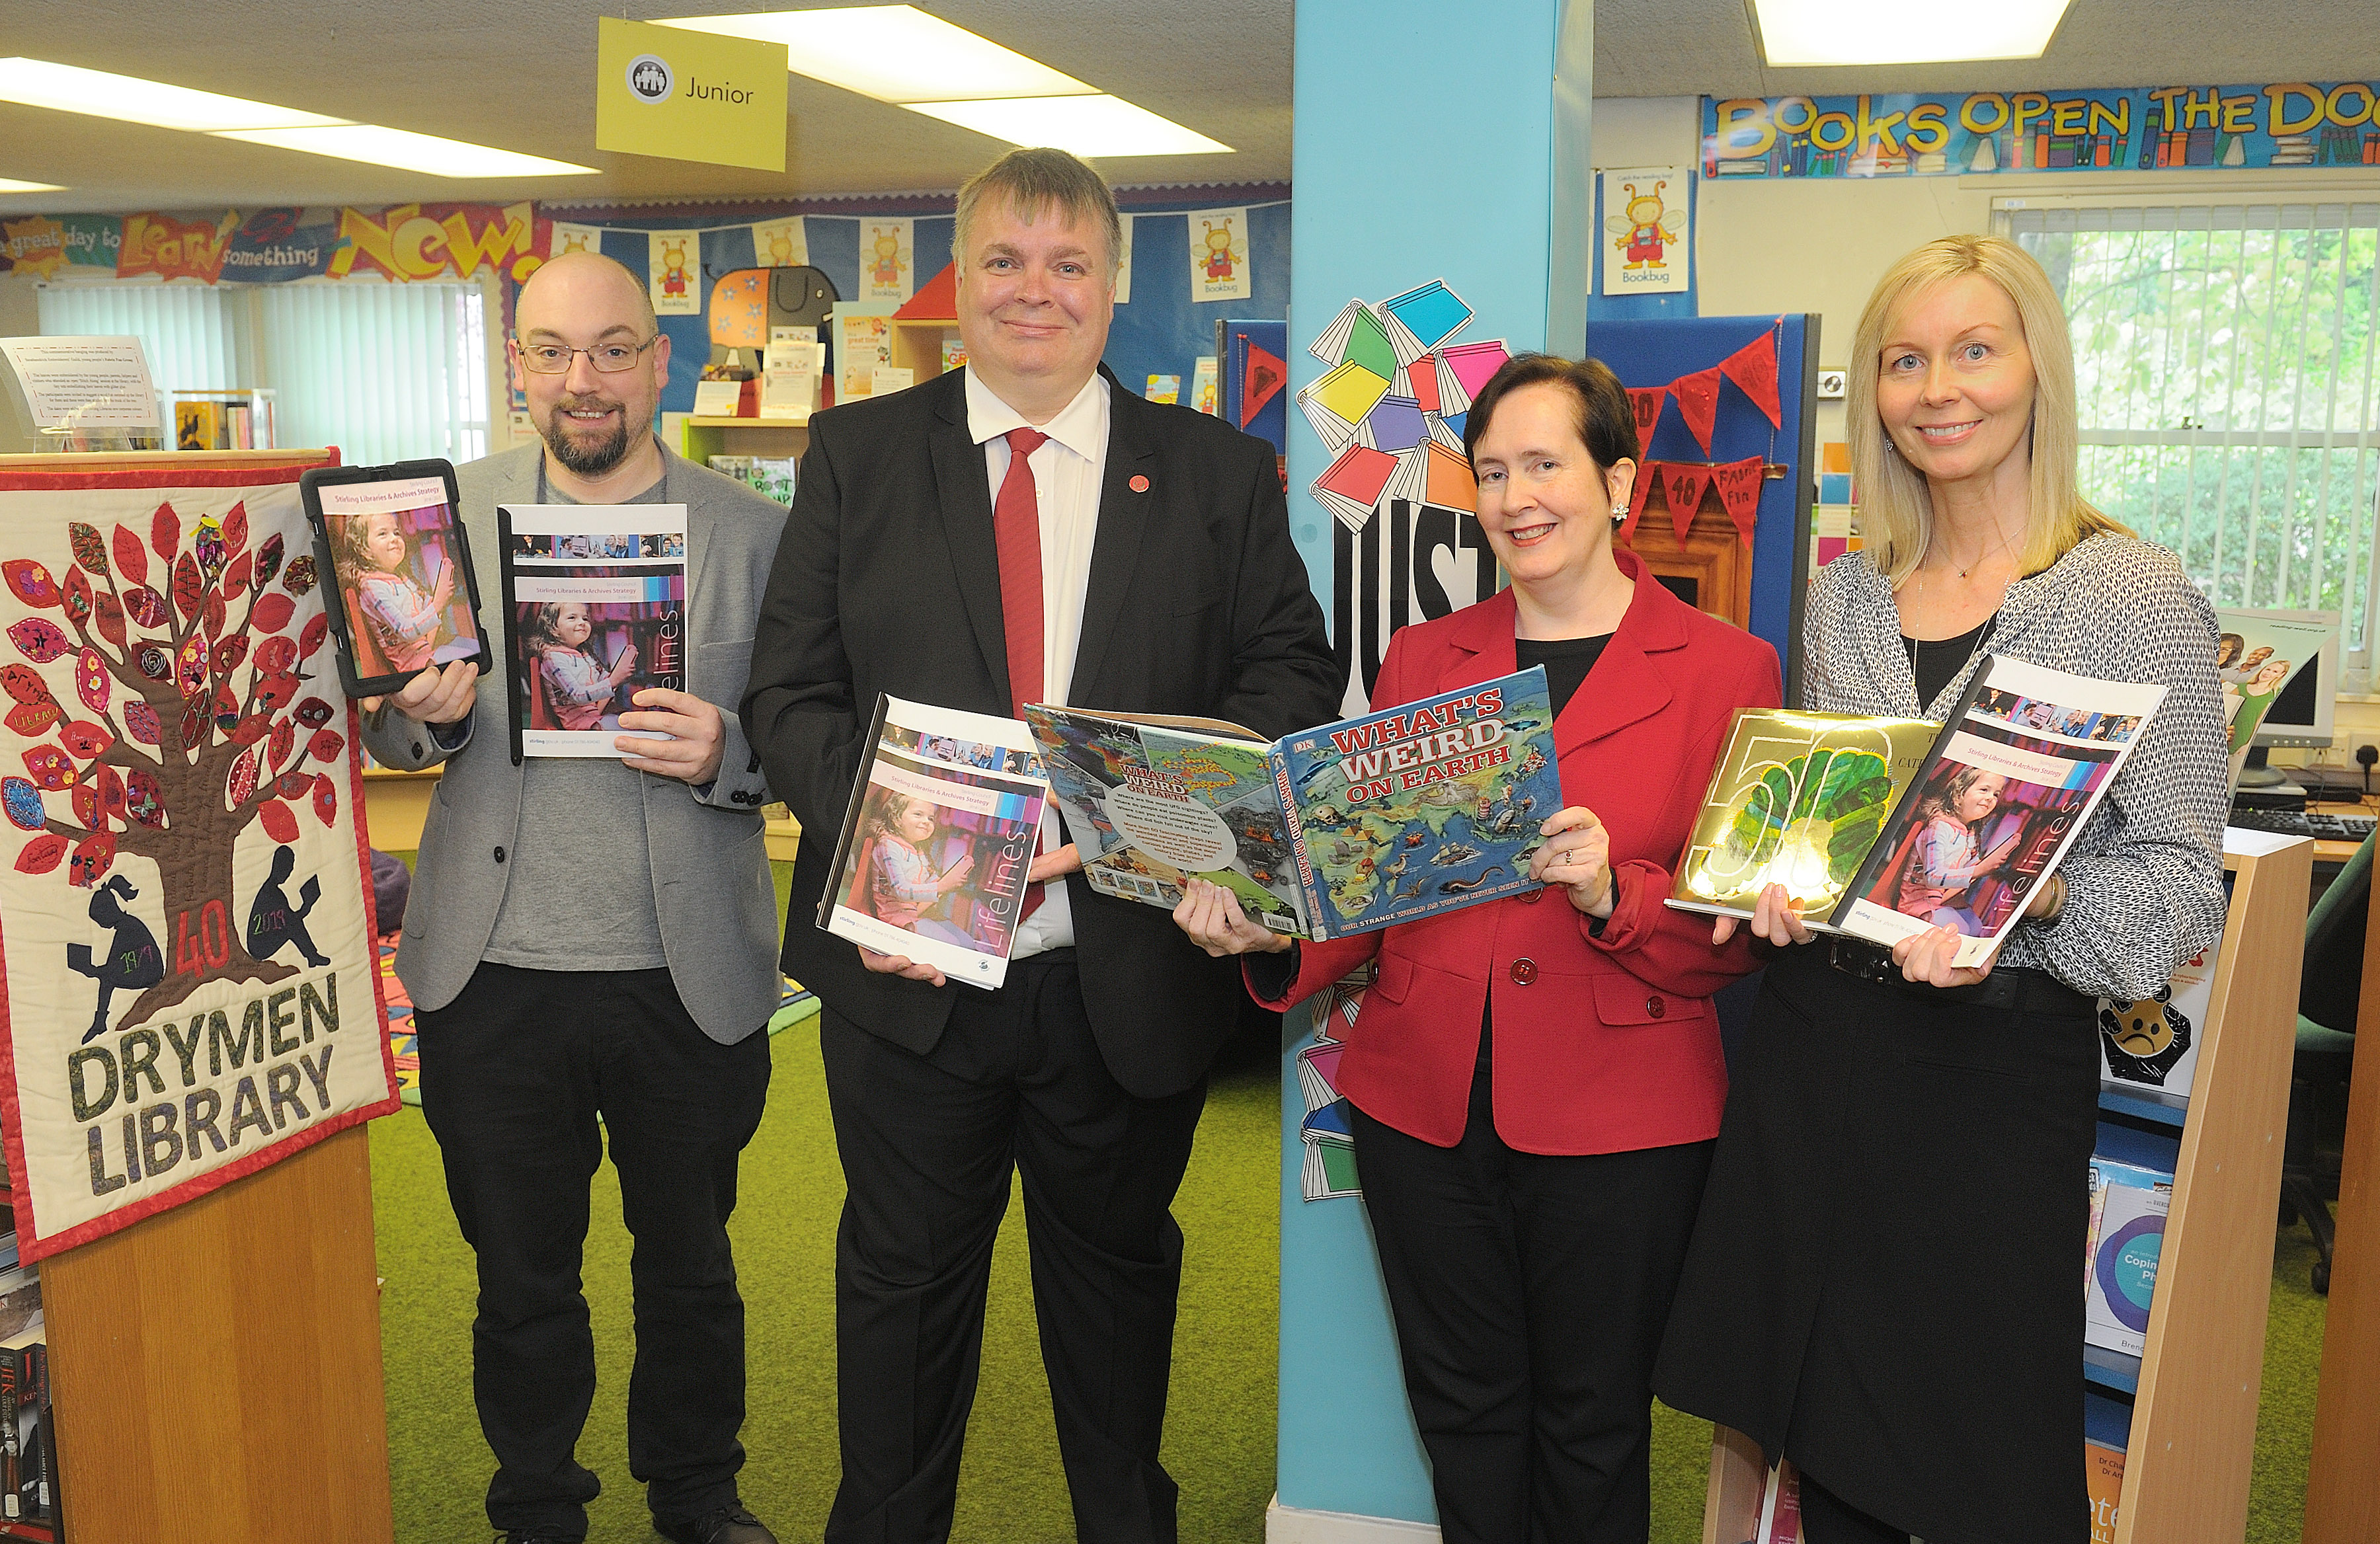 Drymen Library Councillor Visit